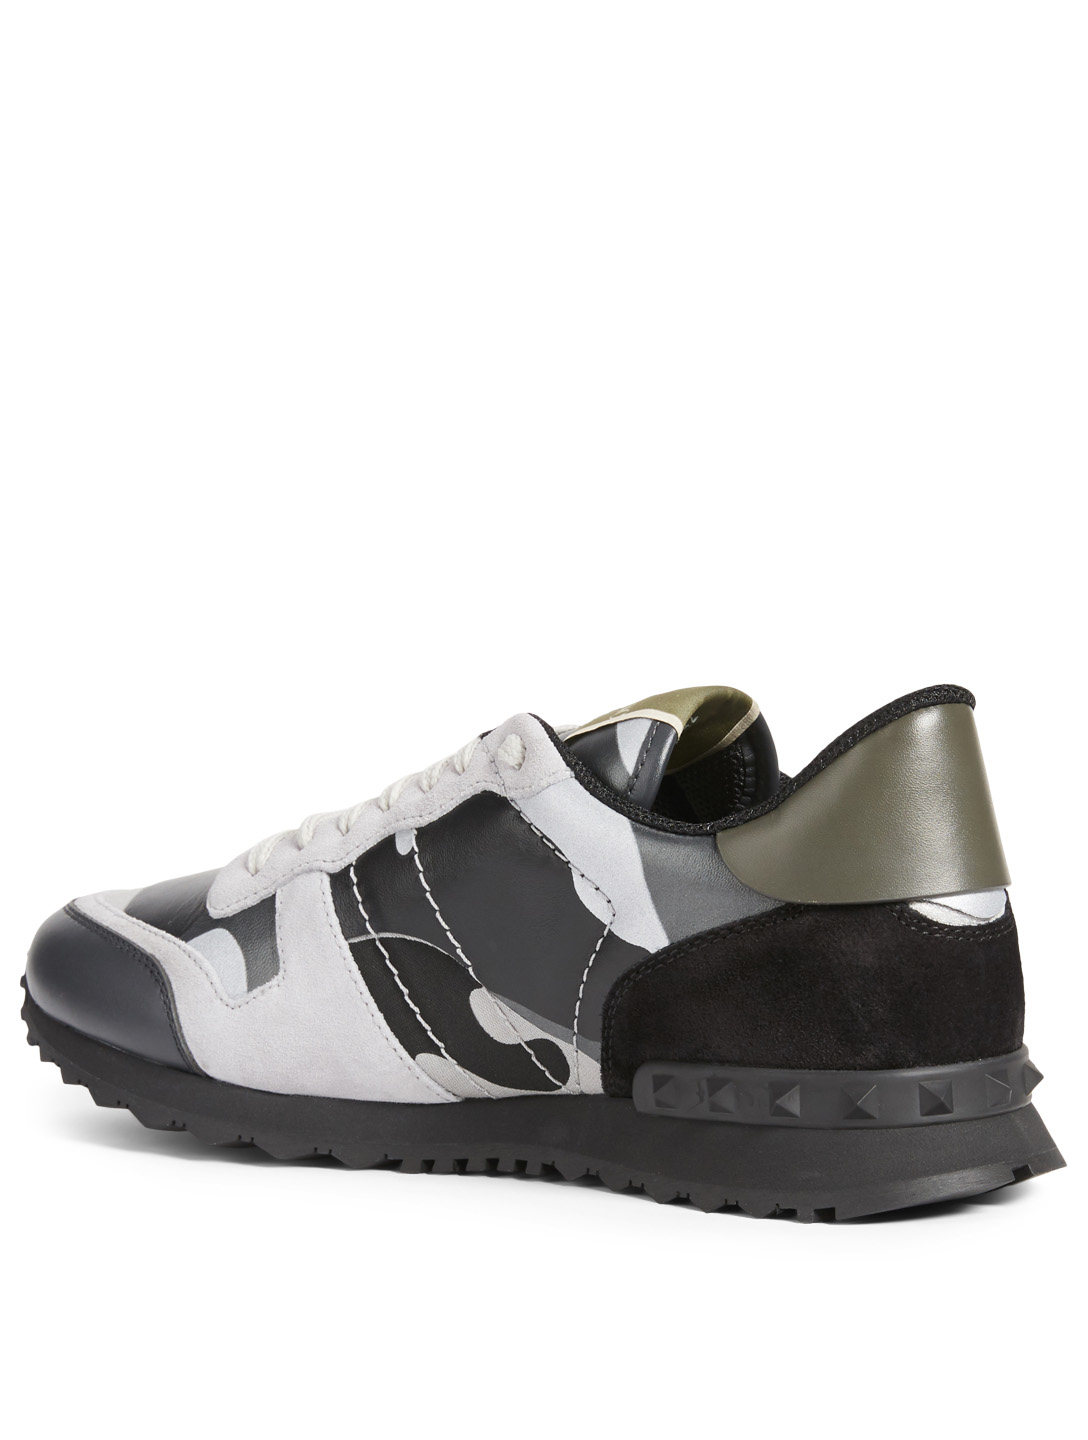 4142546848f09 ... VALENTINO GARAVANI Rockrunner Leather And Fabric Sneakers In Camouflage  Men's Grey ...